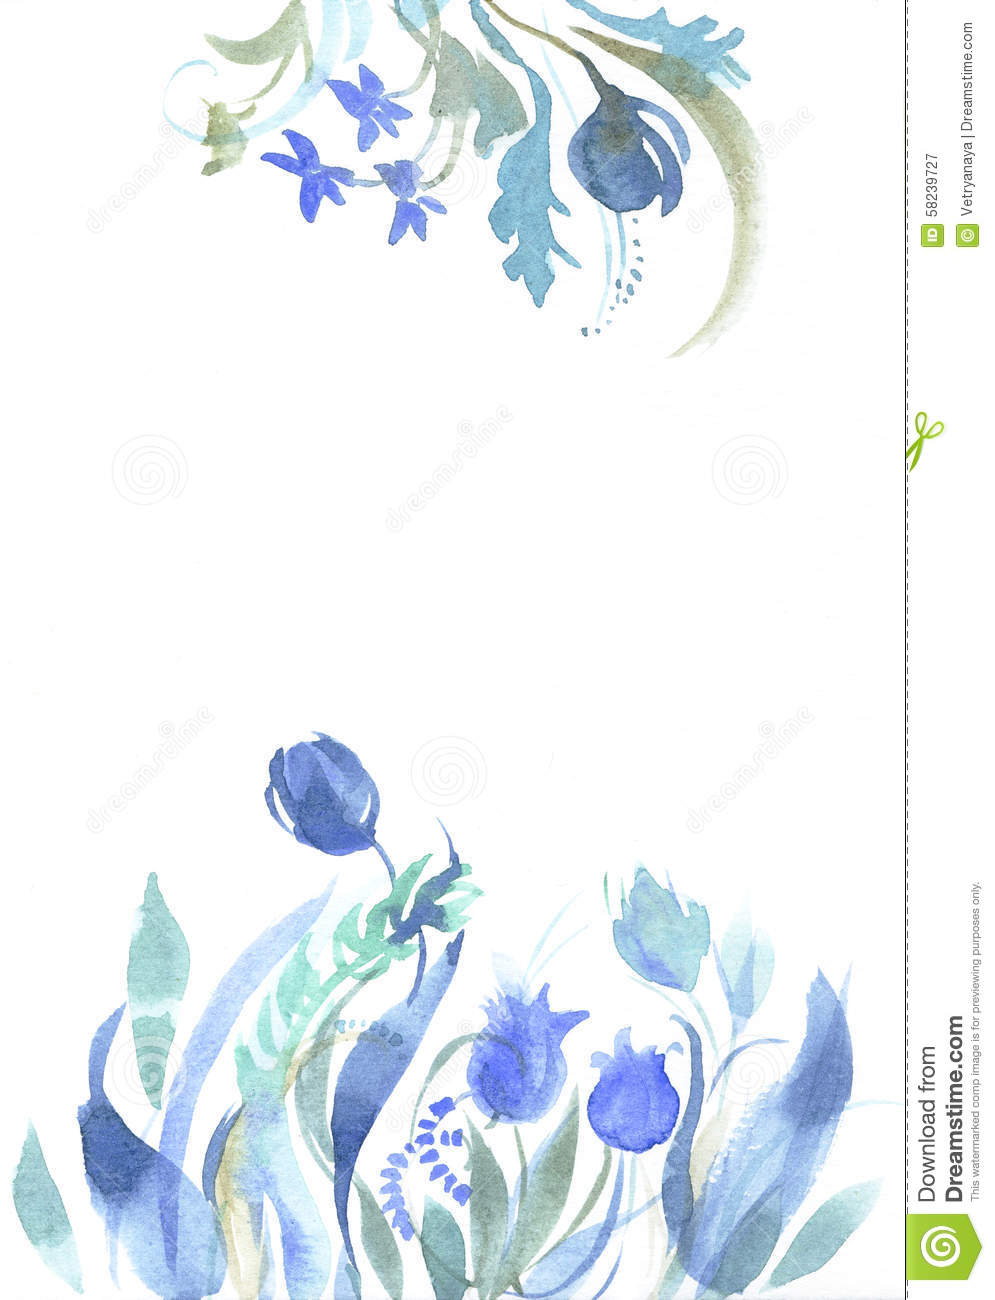 Watercolor Floral Sketch Border Of Fancy Blue Wildflowers Template For Congratulations